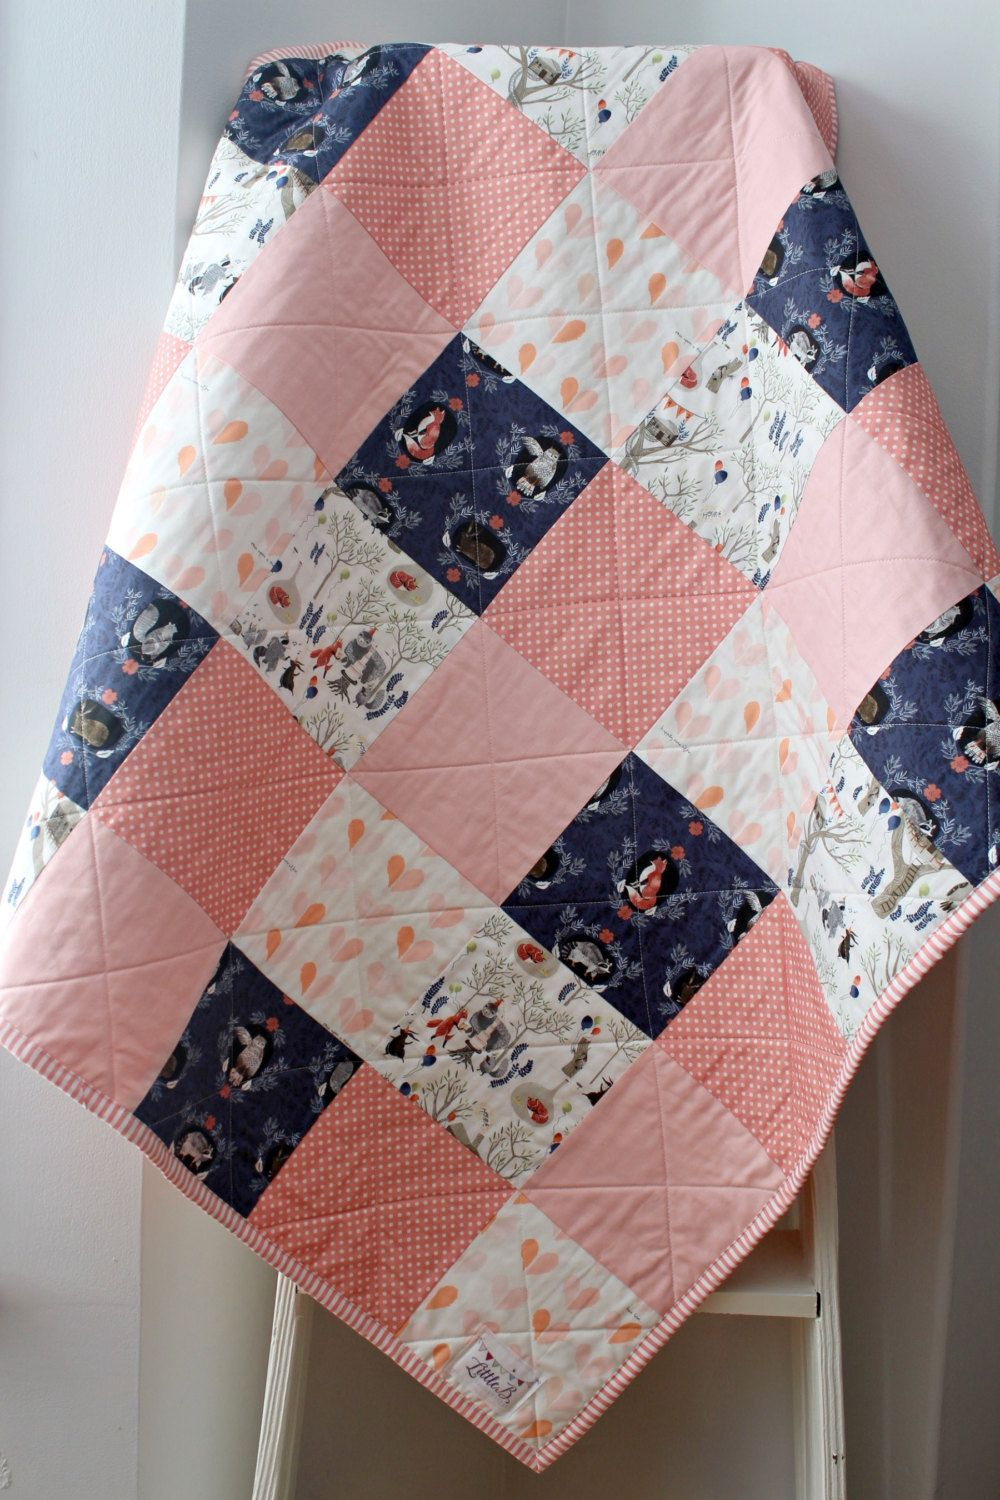 Homemade Quilts For Sale >> Homemade Quilts, Baby Quilt, Woodland Nursery Bedding ...